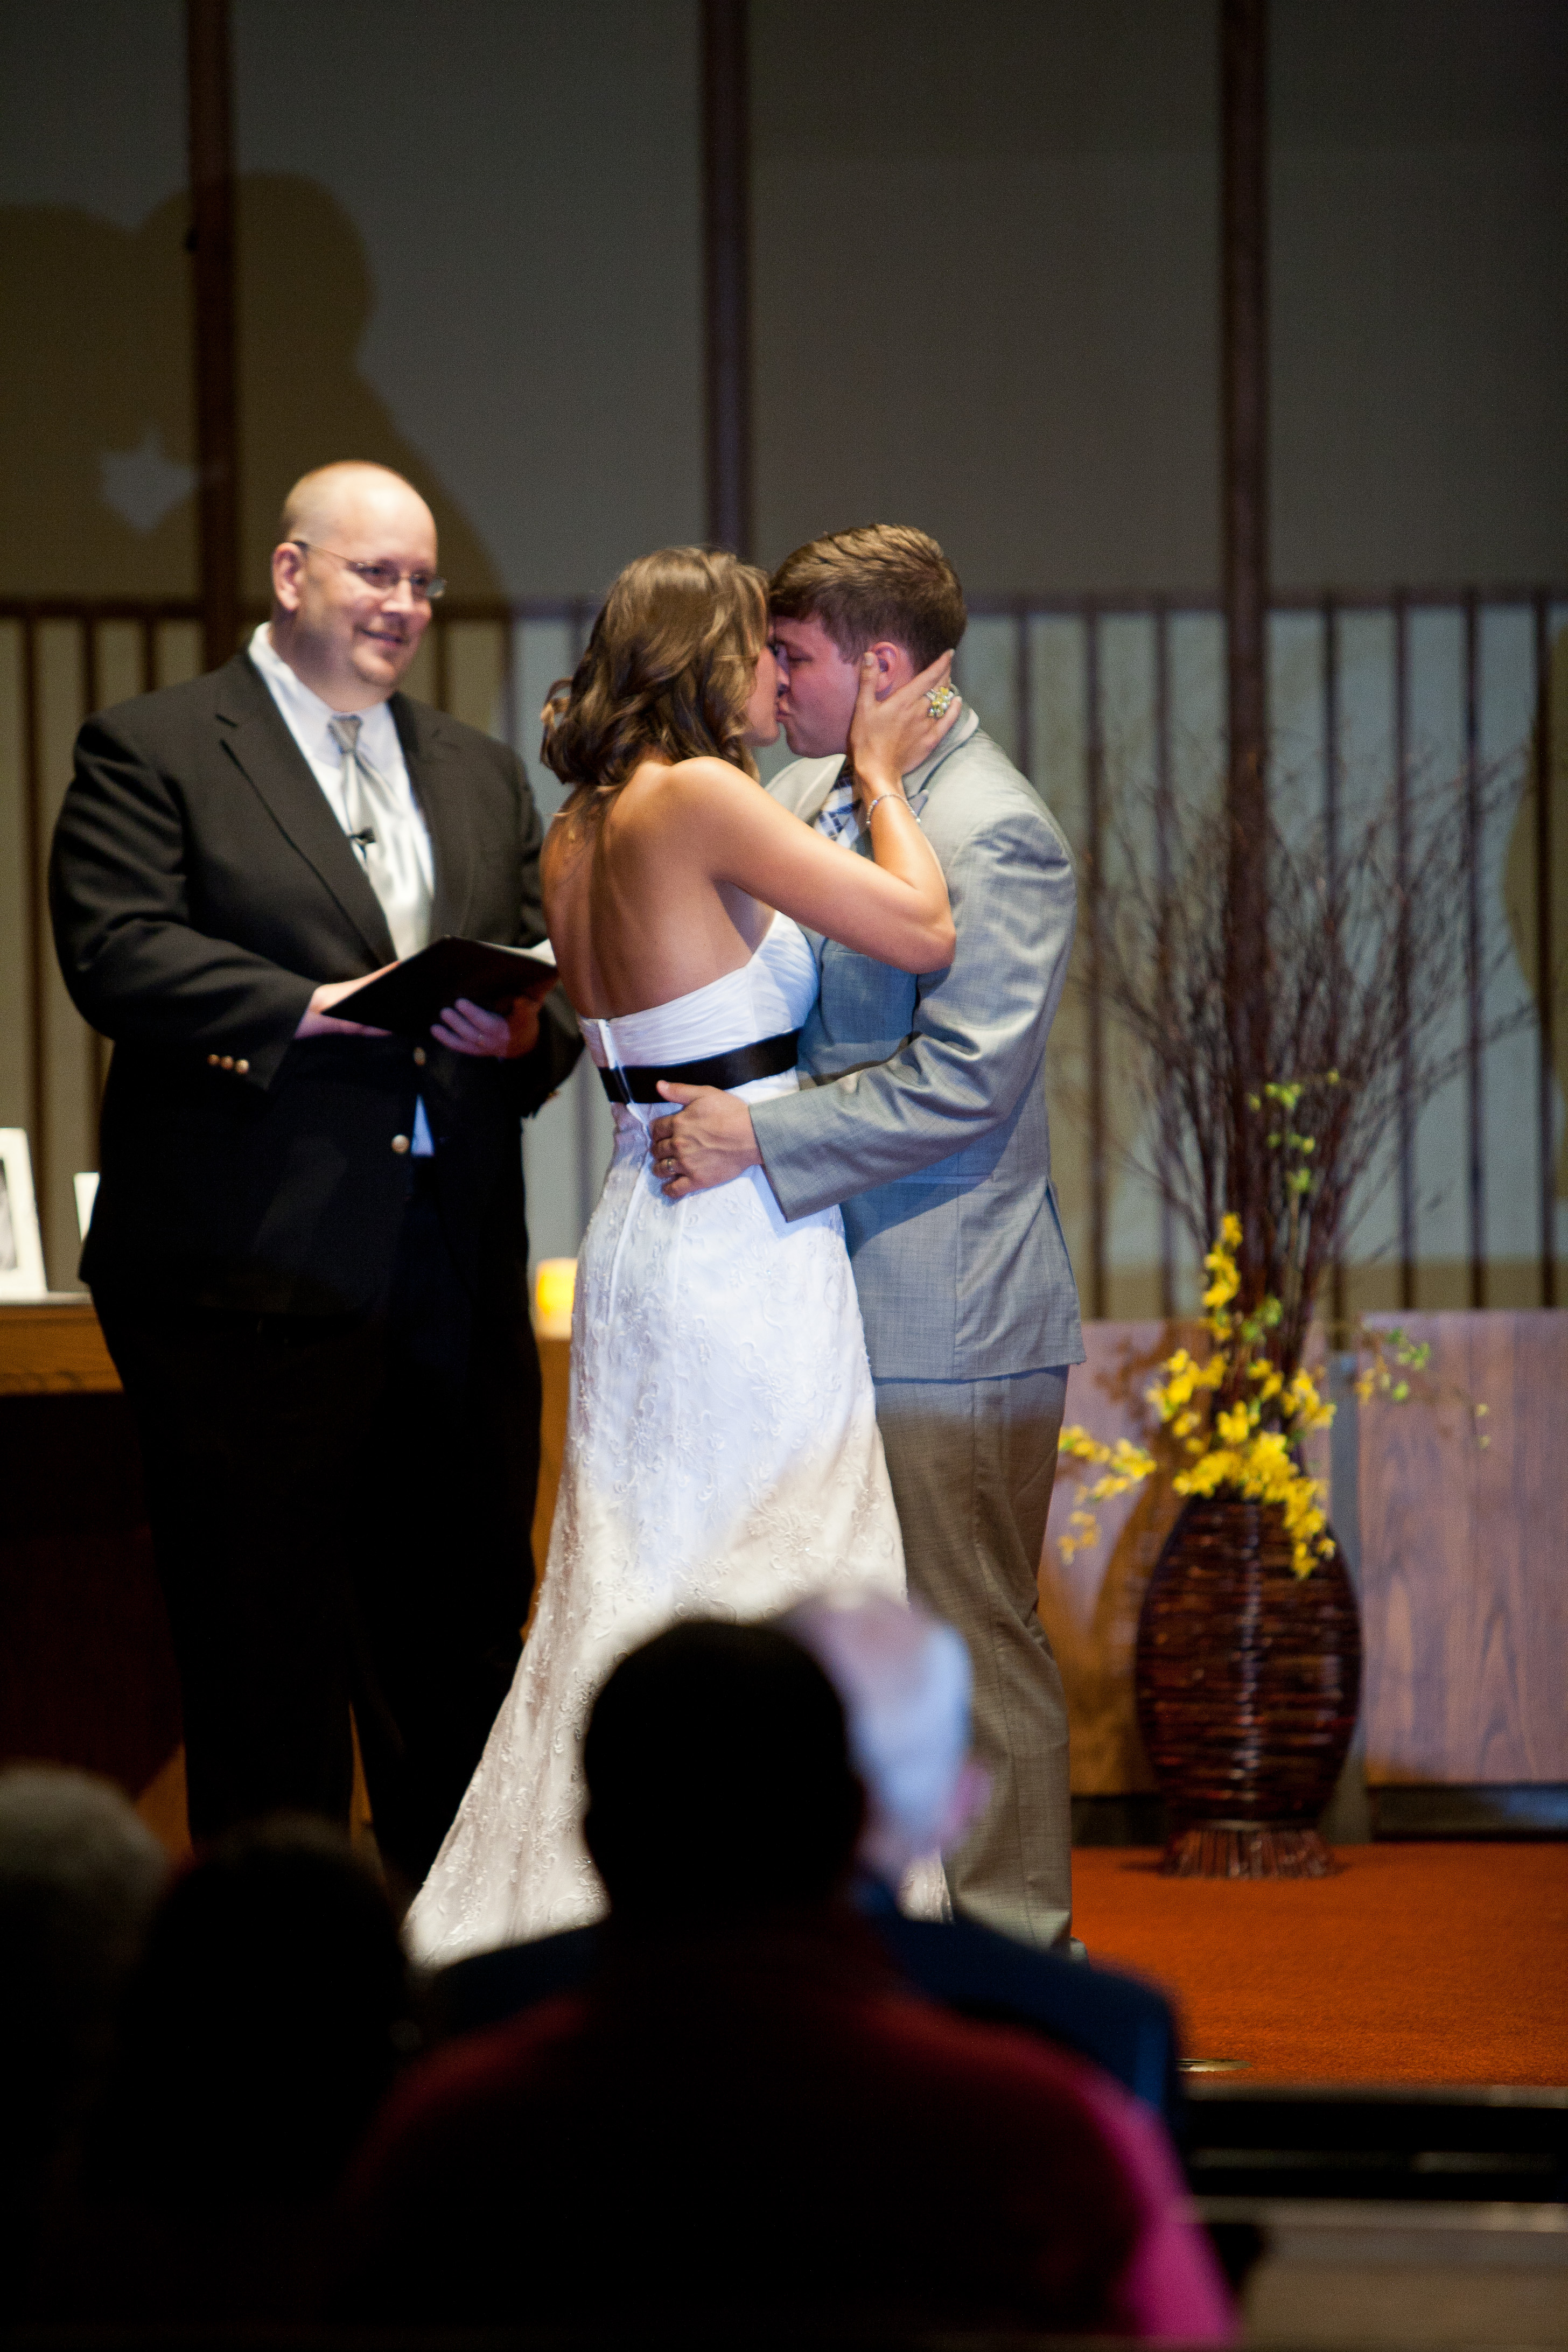 First married kiss!